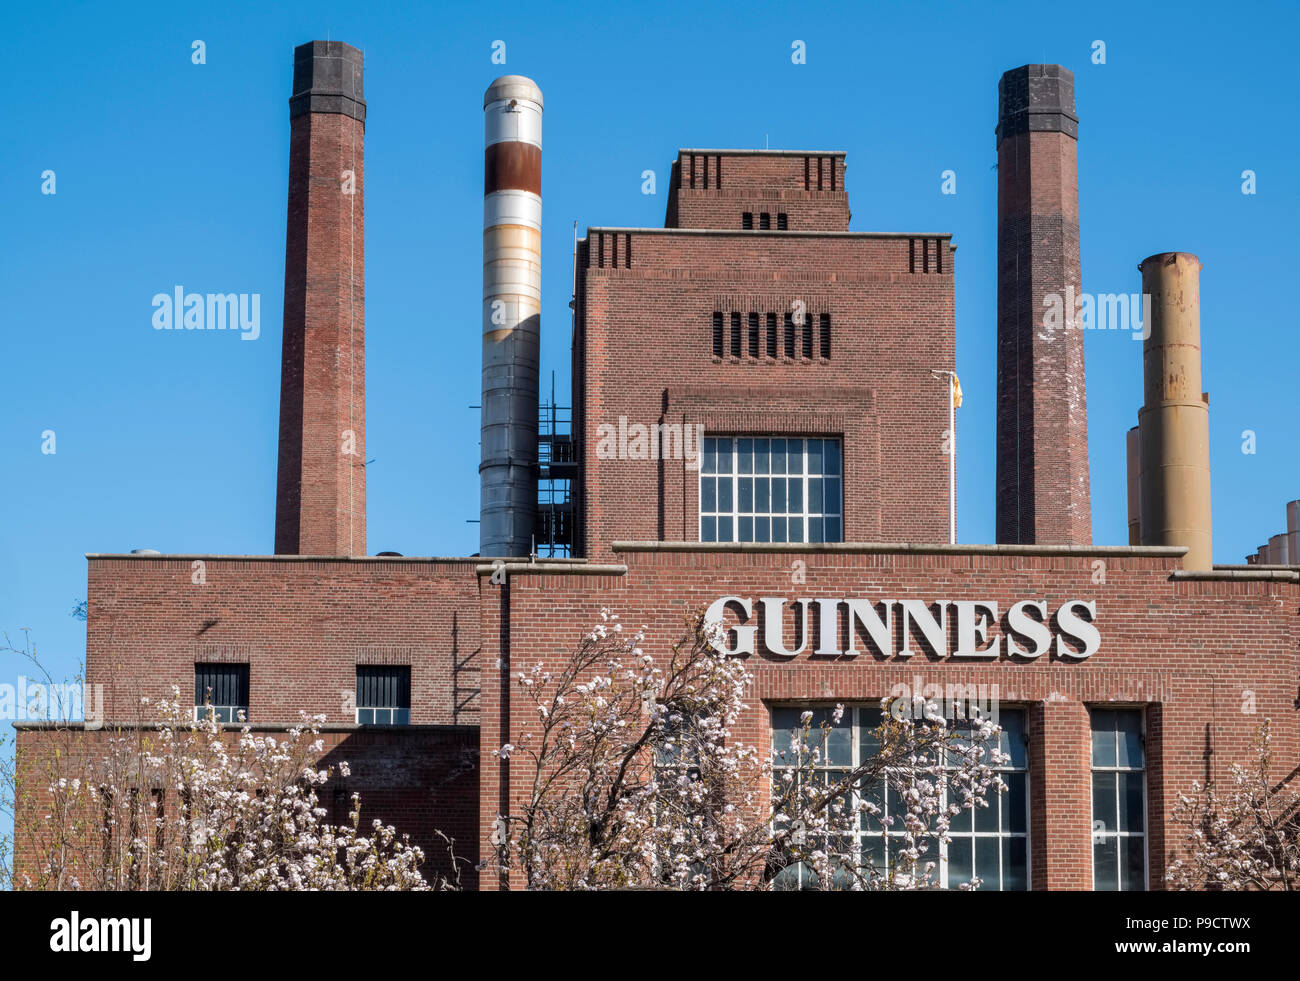 Part of the Guinness Brewery building, Dublin, Ireland, Europe - Stock Image